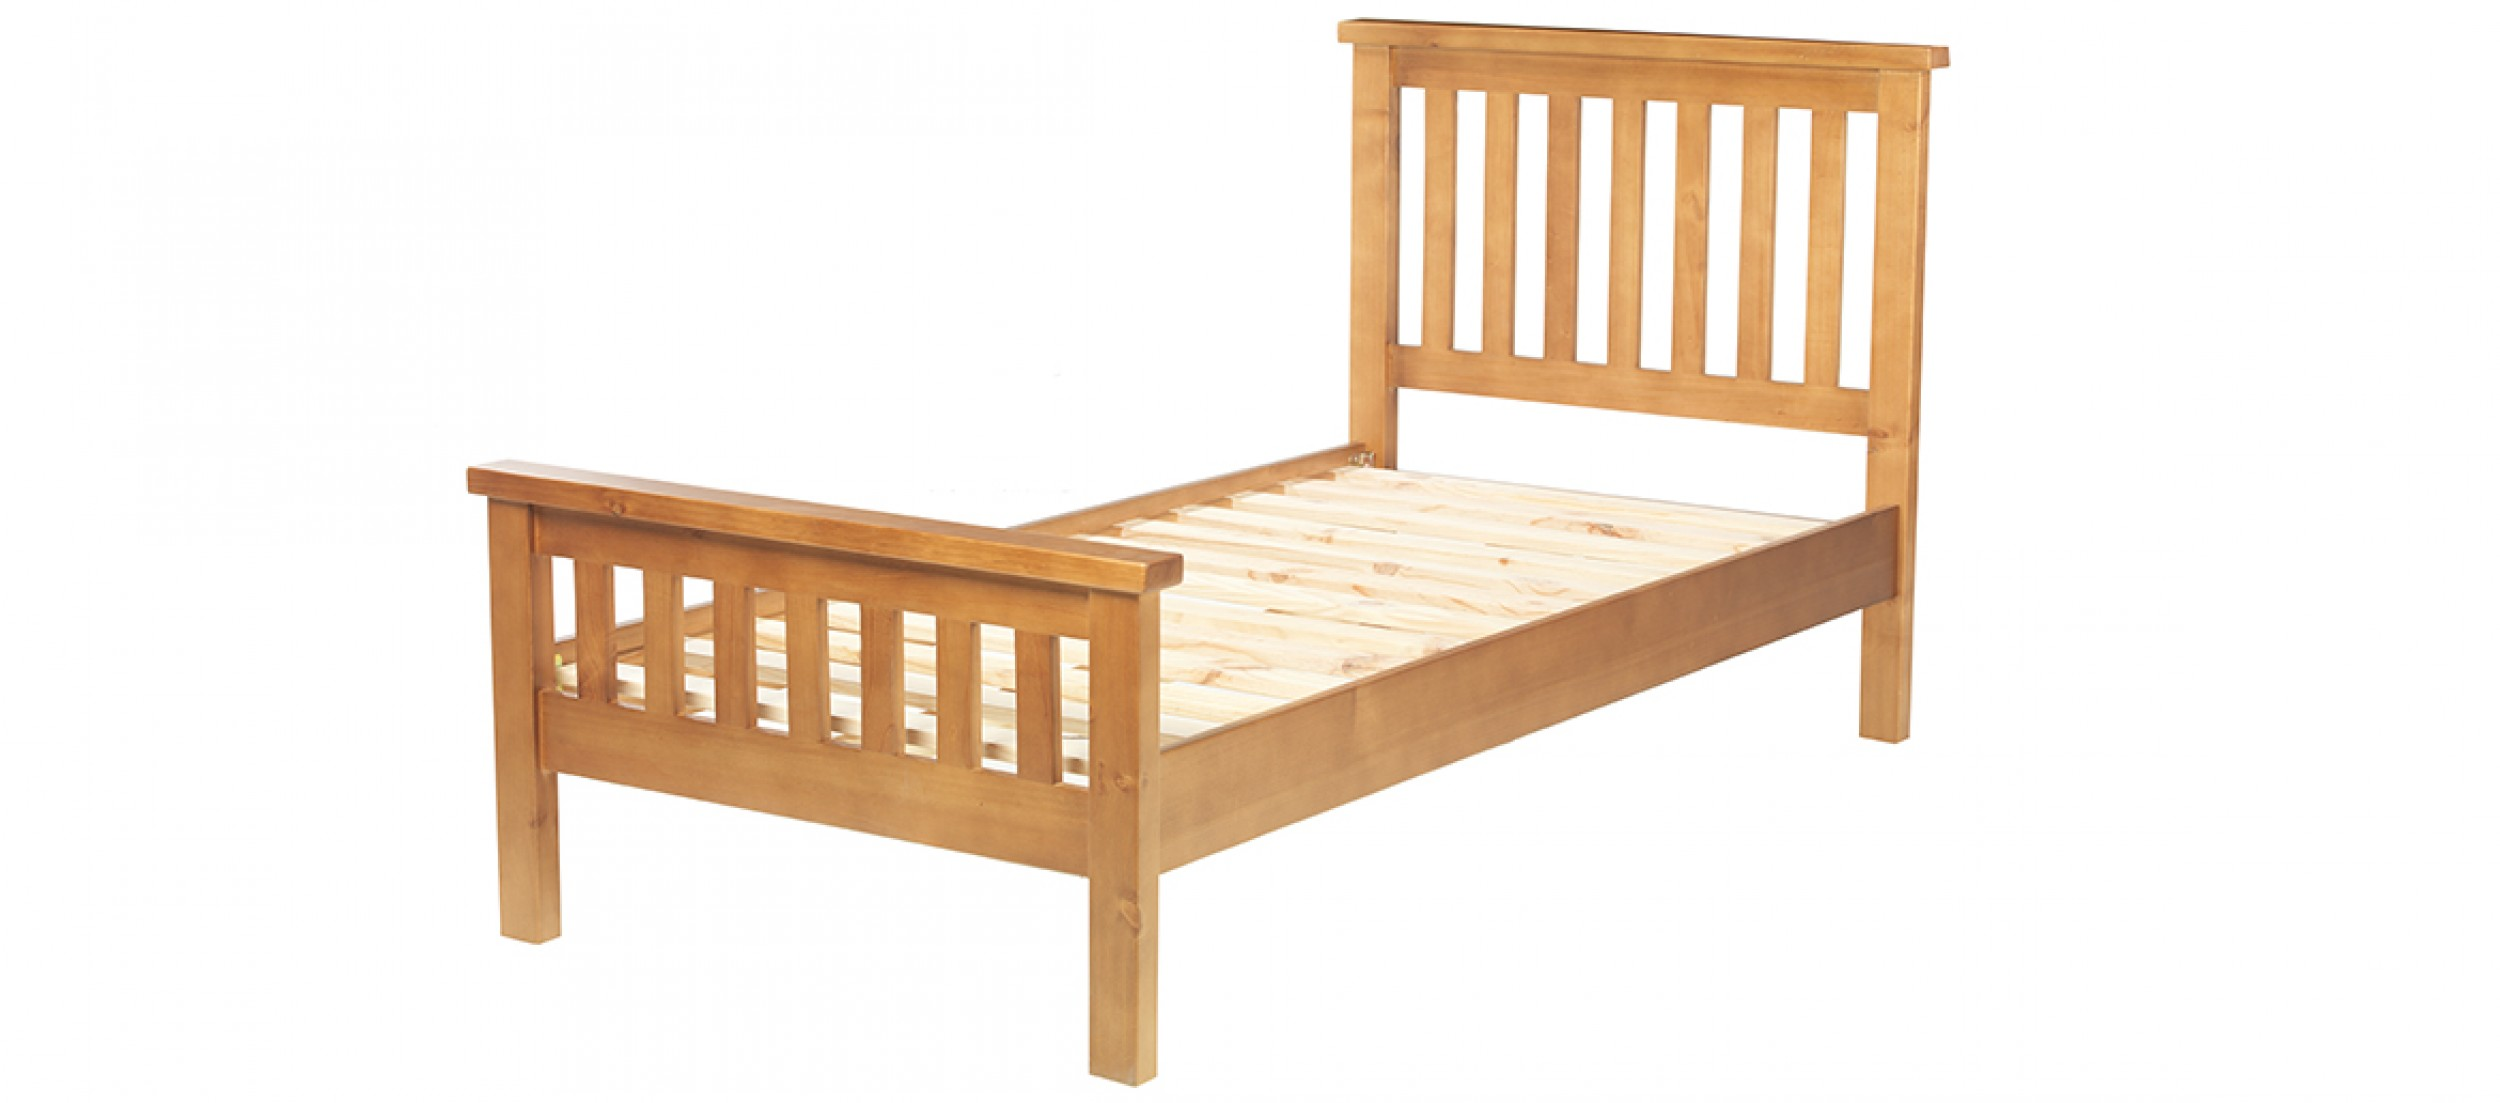 single furniture canada lily store espresso hollow kids sleepy double bed max ml